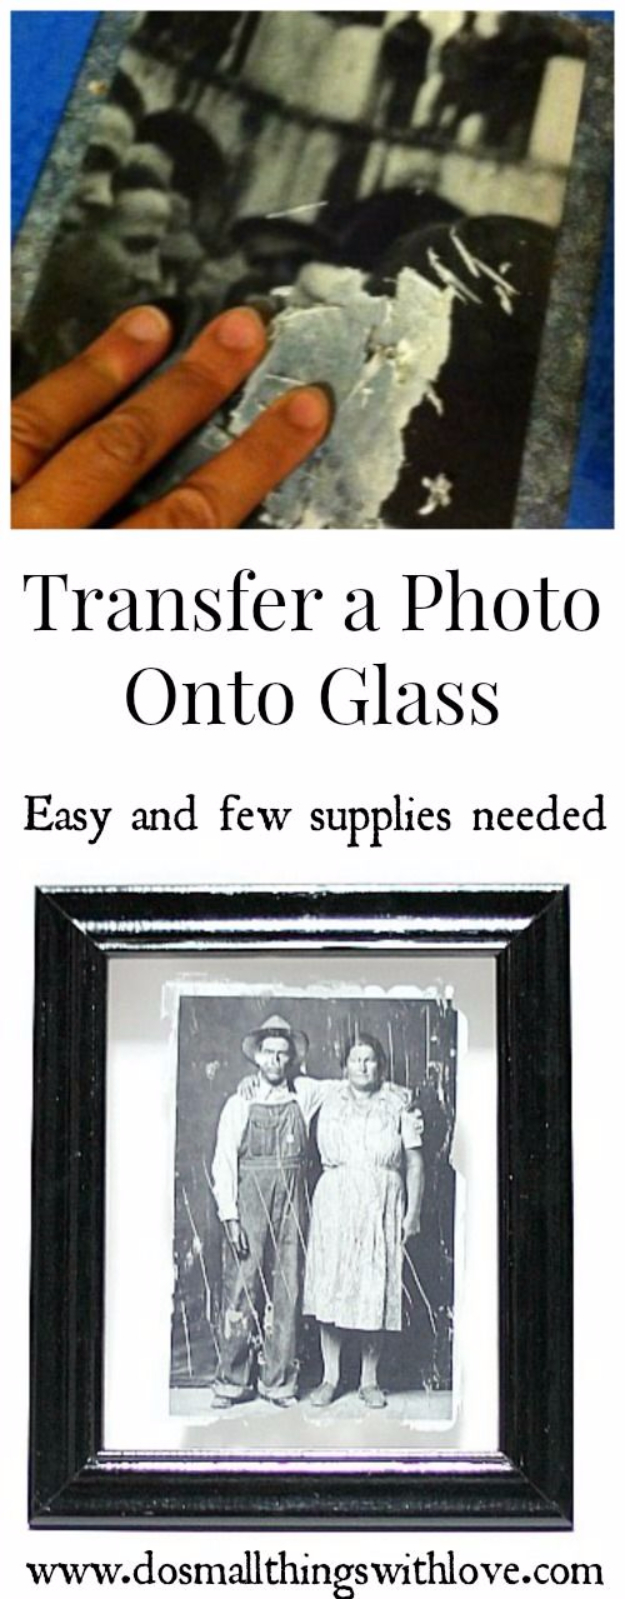 DIY Photo Crafts and Projects for Pictures - Photo Transfer Onto Glass - Handmade Picture Frame Ideas and Step by Step Tutorials for Making Cool DIY Gifts and Home Decor - Cheap and Easy Photo Frames, Creative Ways to Frame and Mount Photos on Canvas and Display Them In Your House